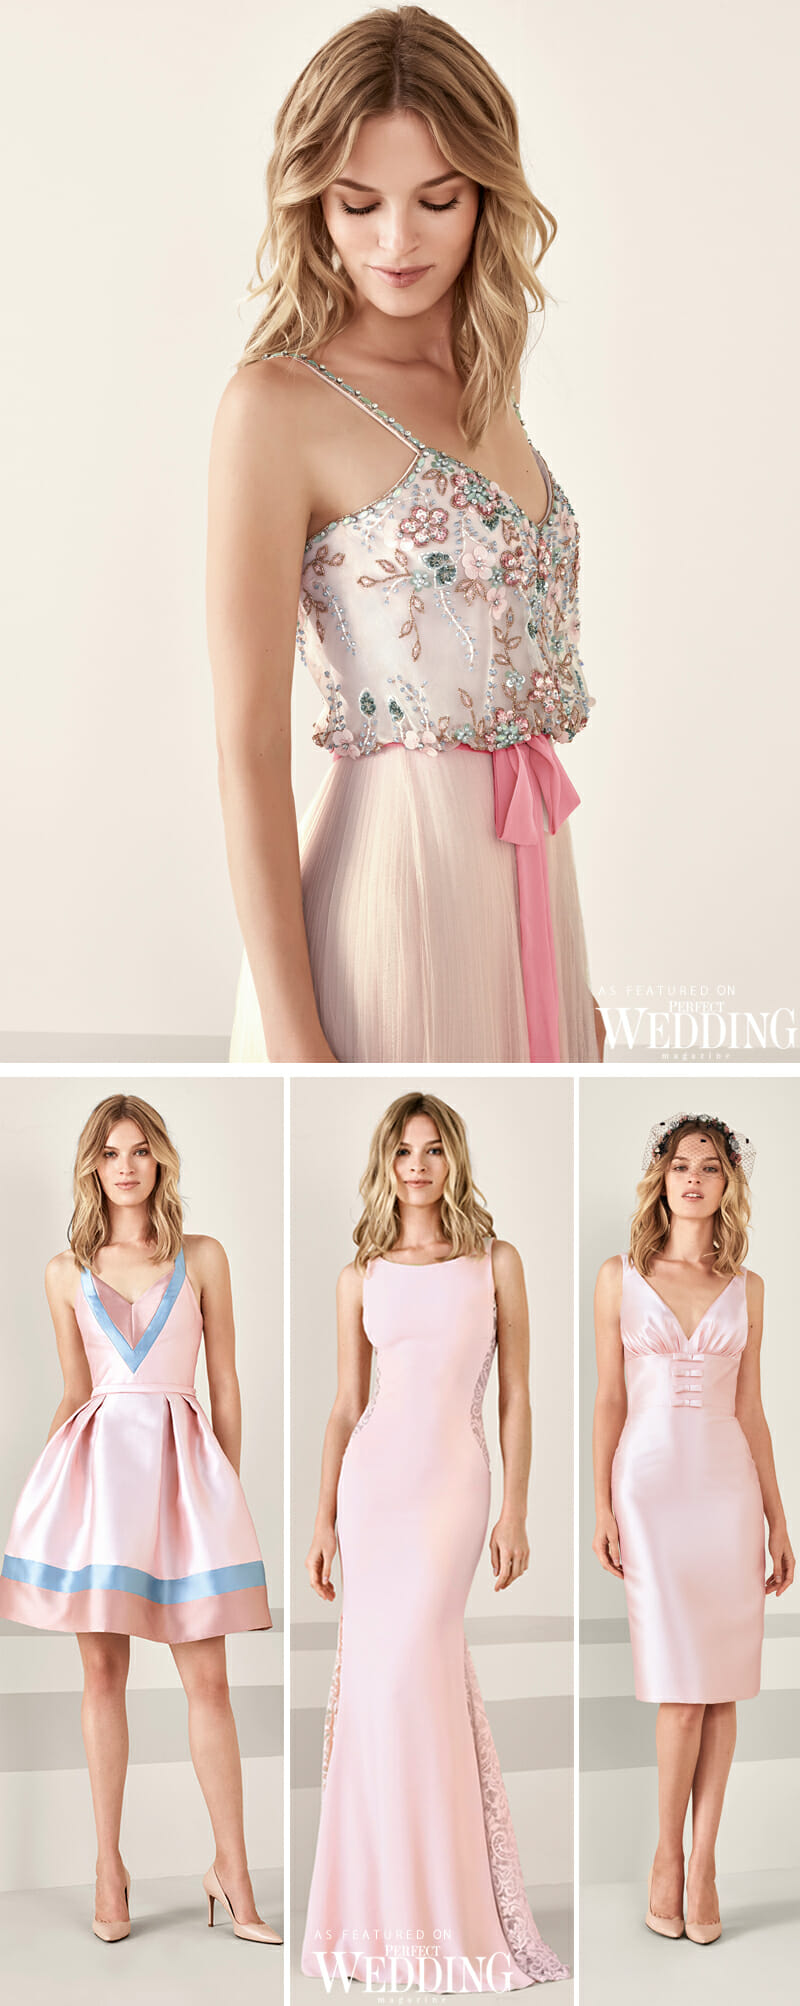 Pronovias, Pronovias Cocktail Dresses, Cocktail Dresses, Pronovias Cocktail 2019, Summer Dresses, Perfect Wedding Magazine, Perfect Wedding Blog